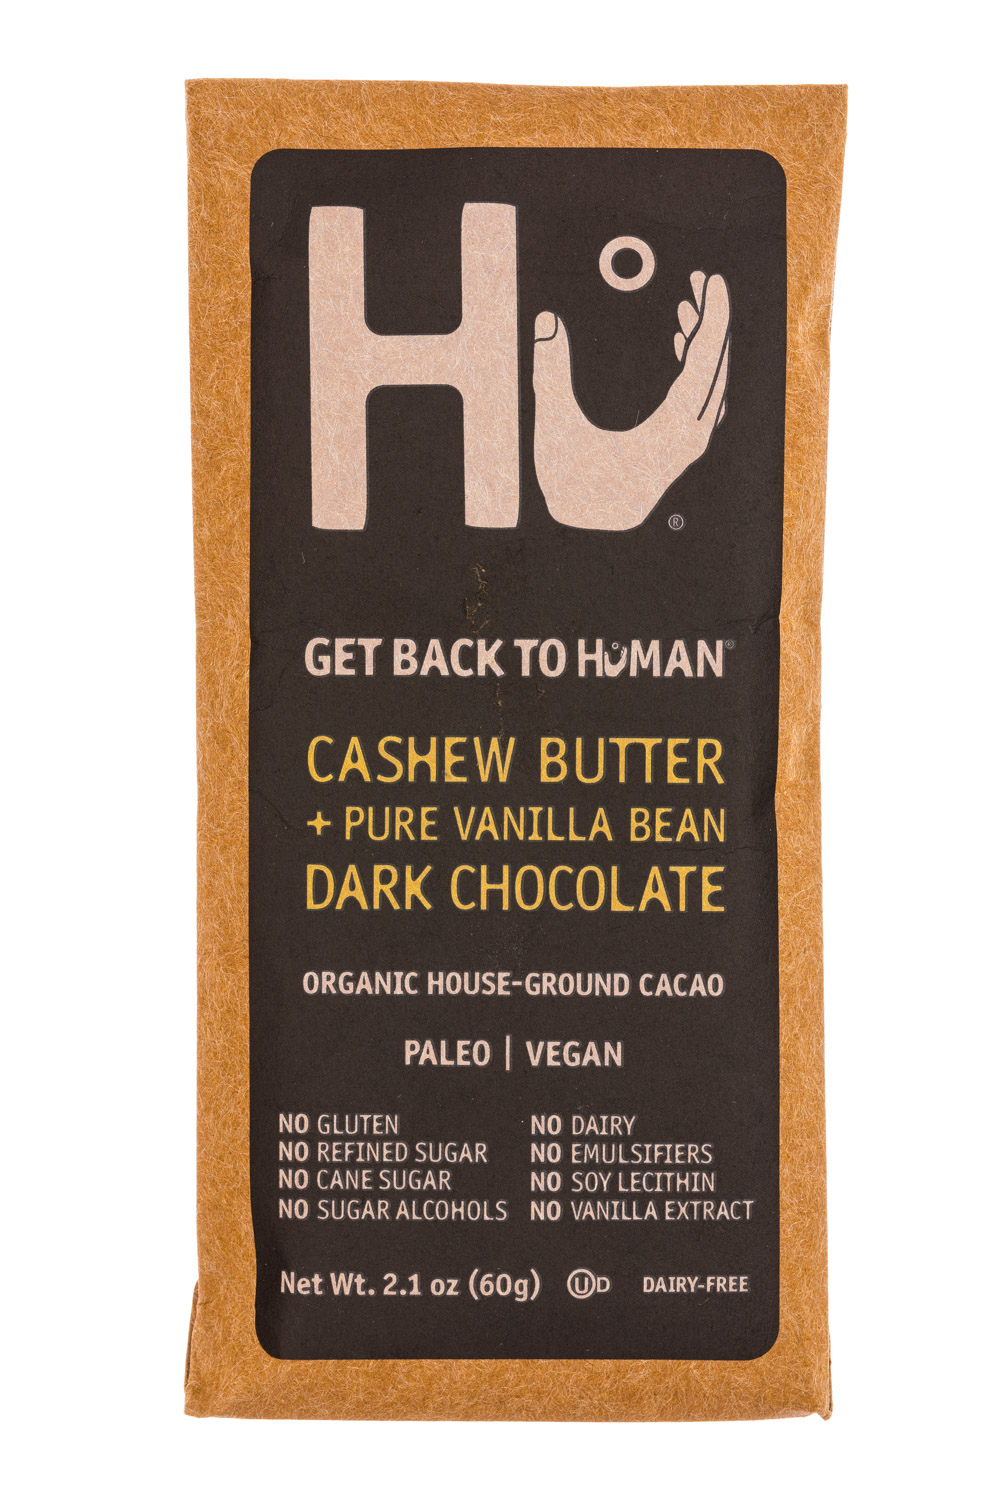 Cashew Butter + Pure Vanilla Bean Dark Chocolate